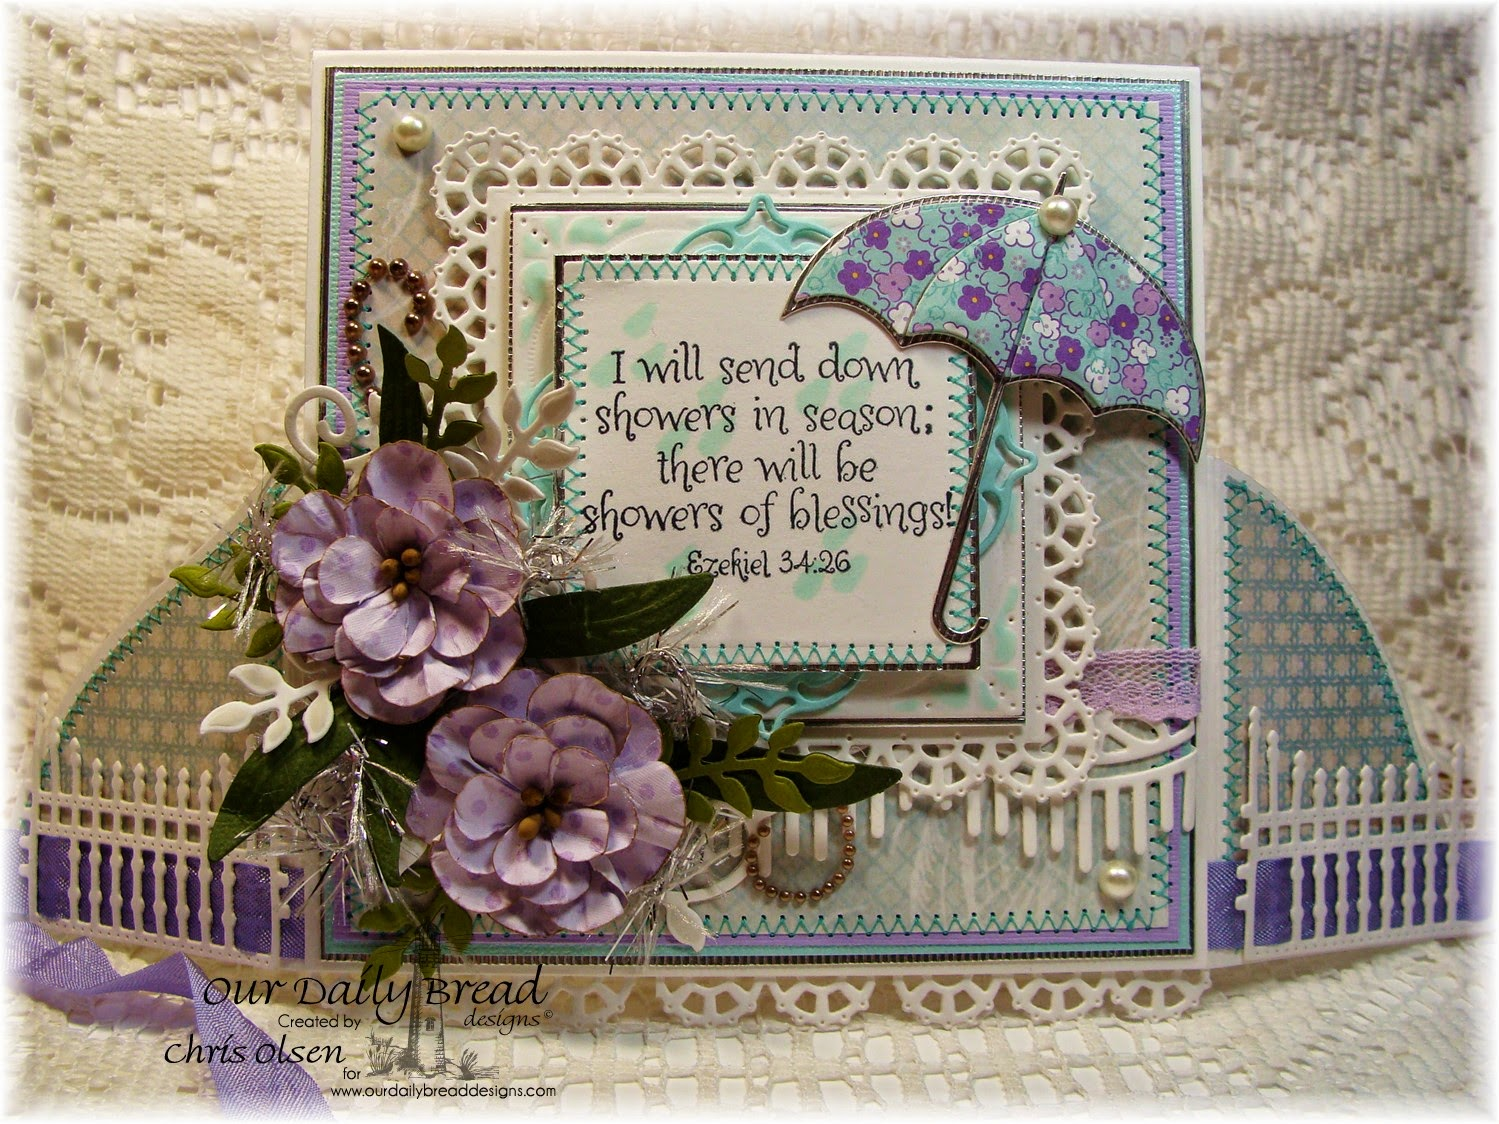 Our Daily Bread Designs, Umbrella die, Showers of blessing, Layered Lacey Squares die, Fancy Foliage, Beautiful Borders, Aster die, Shabby Rose Collection, gilded gate die, designer-Chris Olsen, Twinkles Glow with Stamps